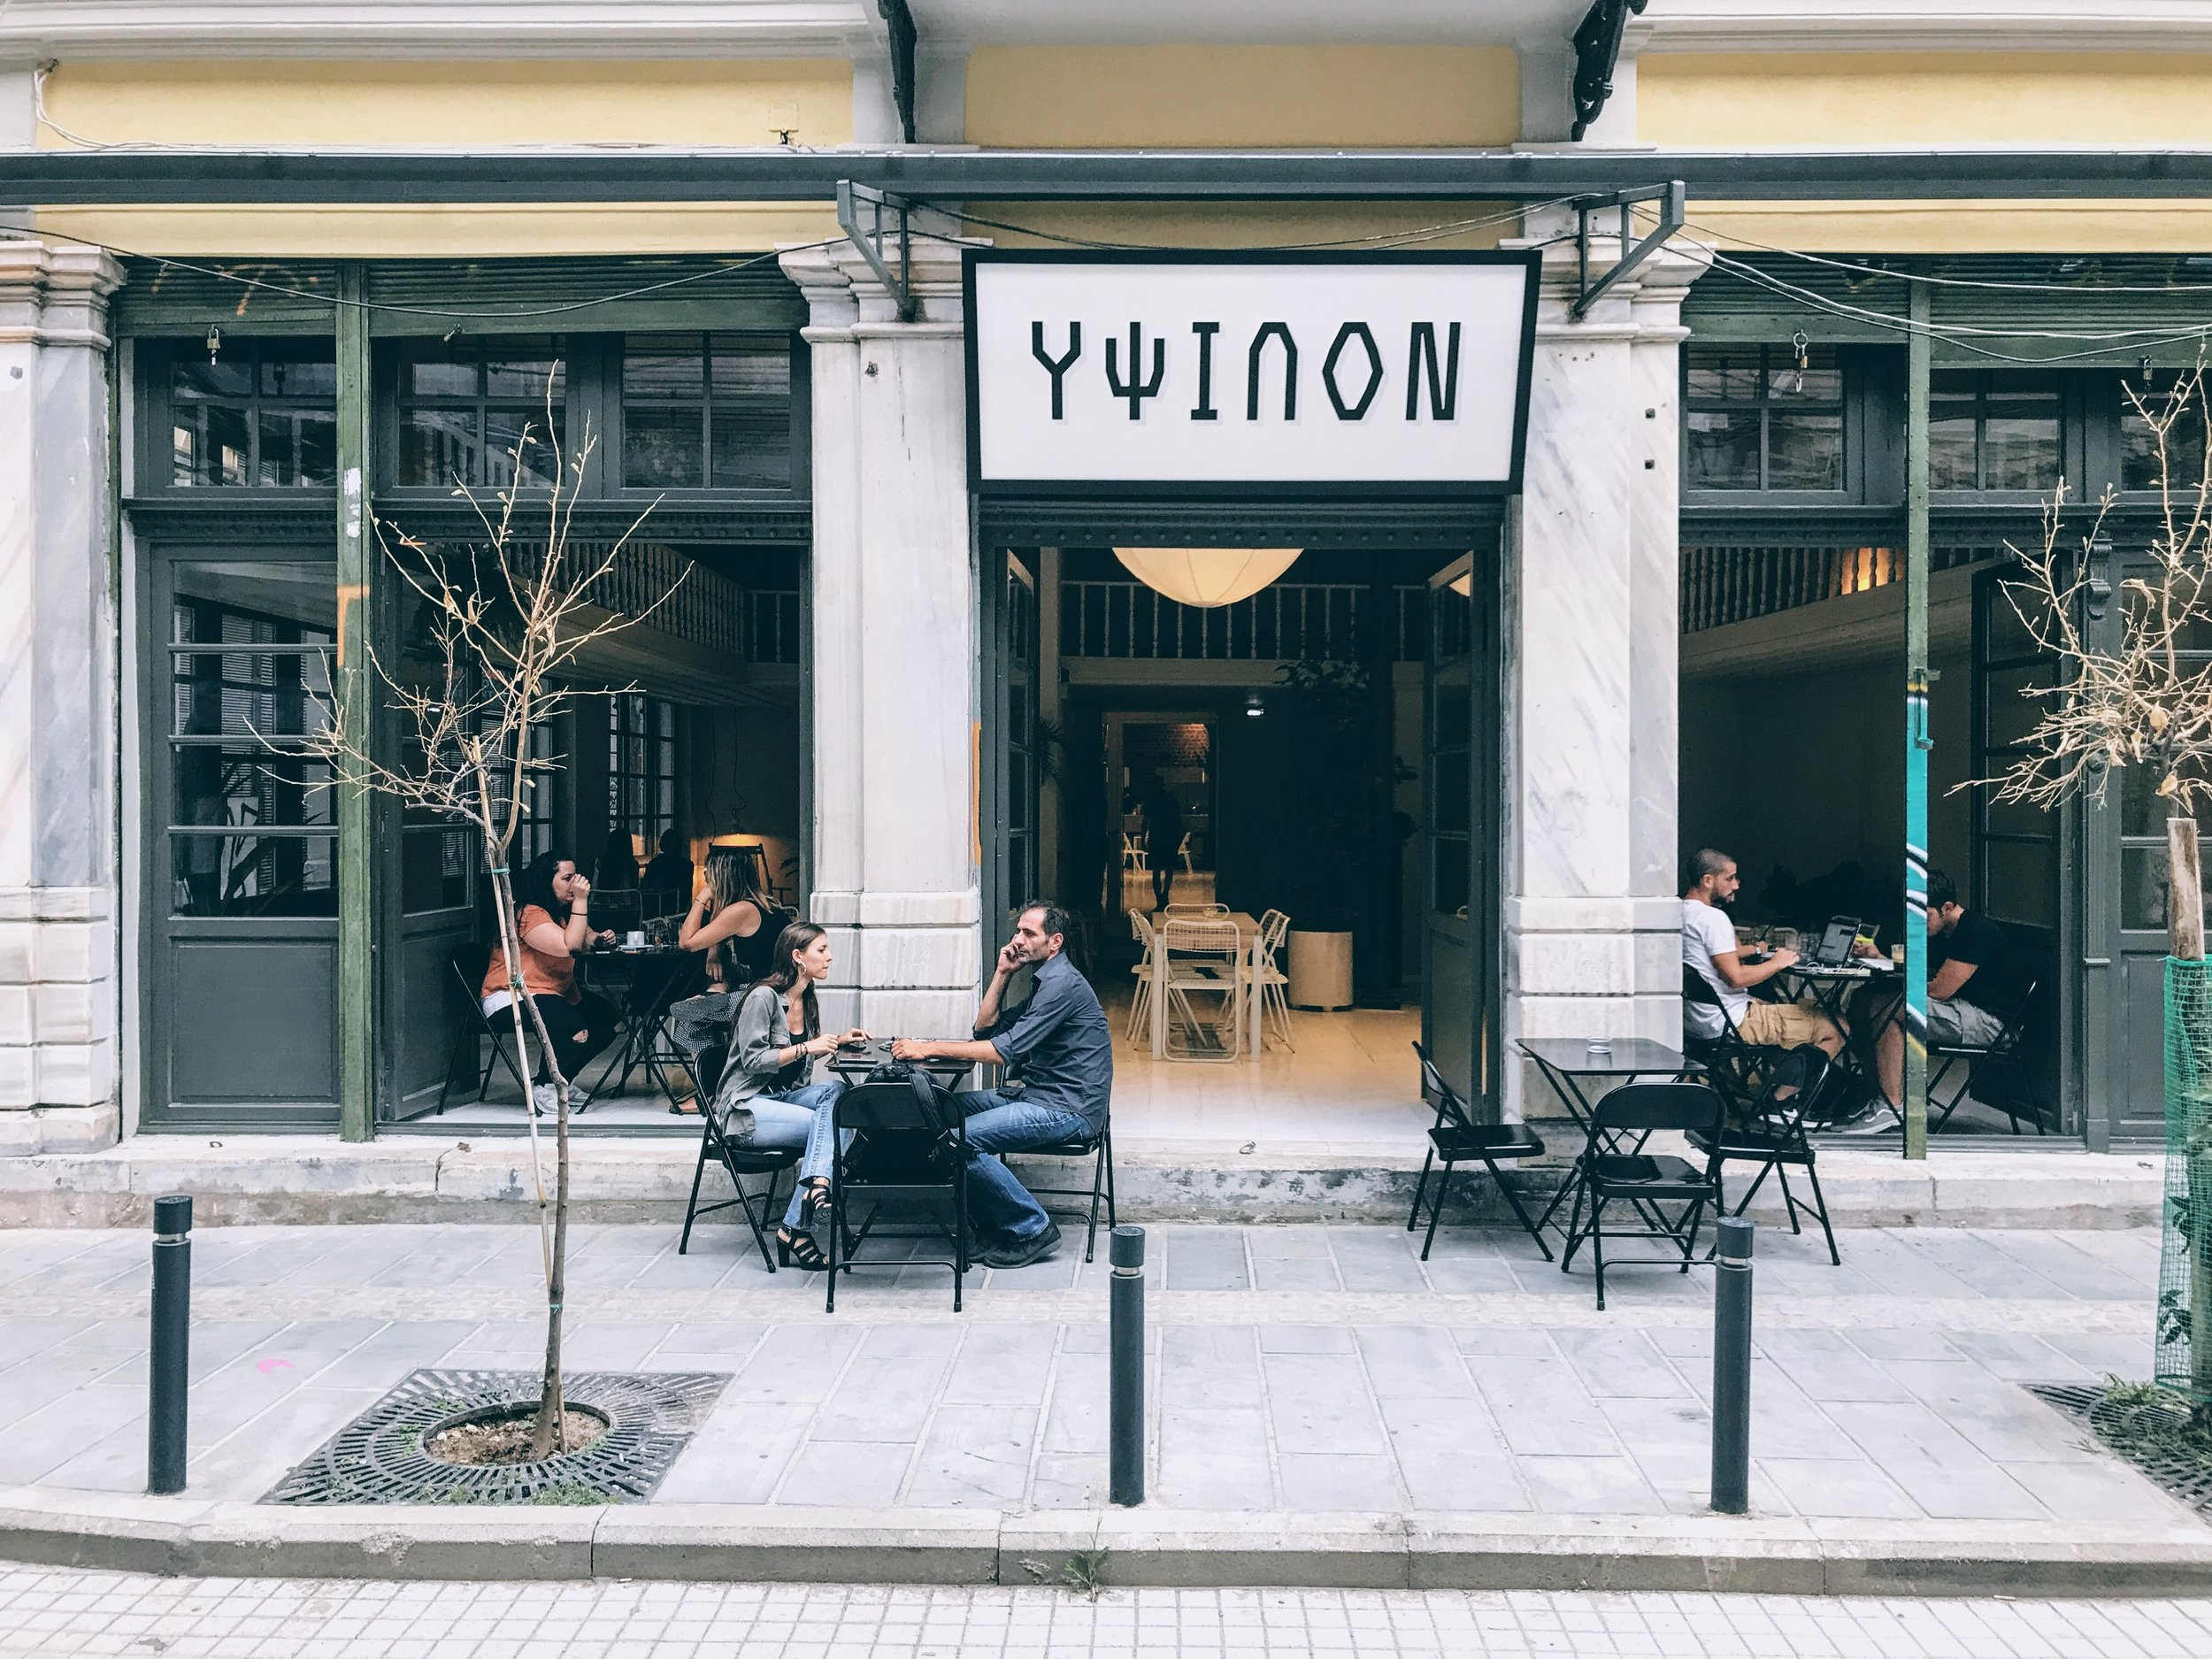 Thessaloniki: finally, an all-day art coffee space at Ypsilon